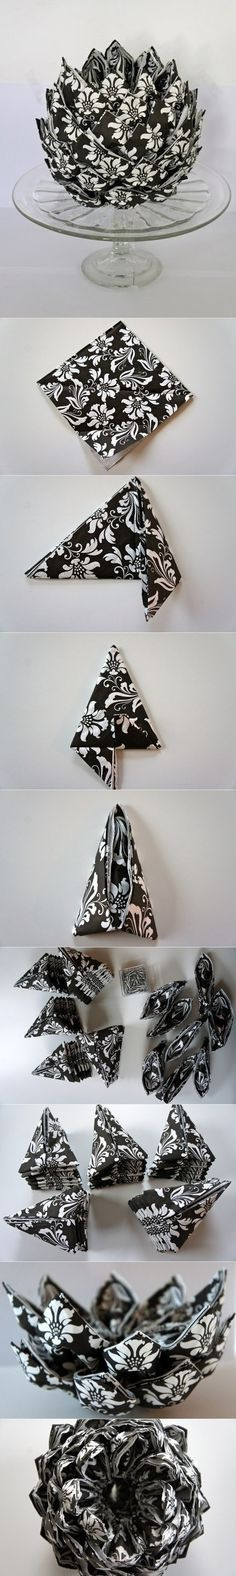 Lotus Serviette Folding :  Lotus on Pinterest  Pliage Serviette, Pliage and Napkin Folding